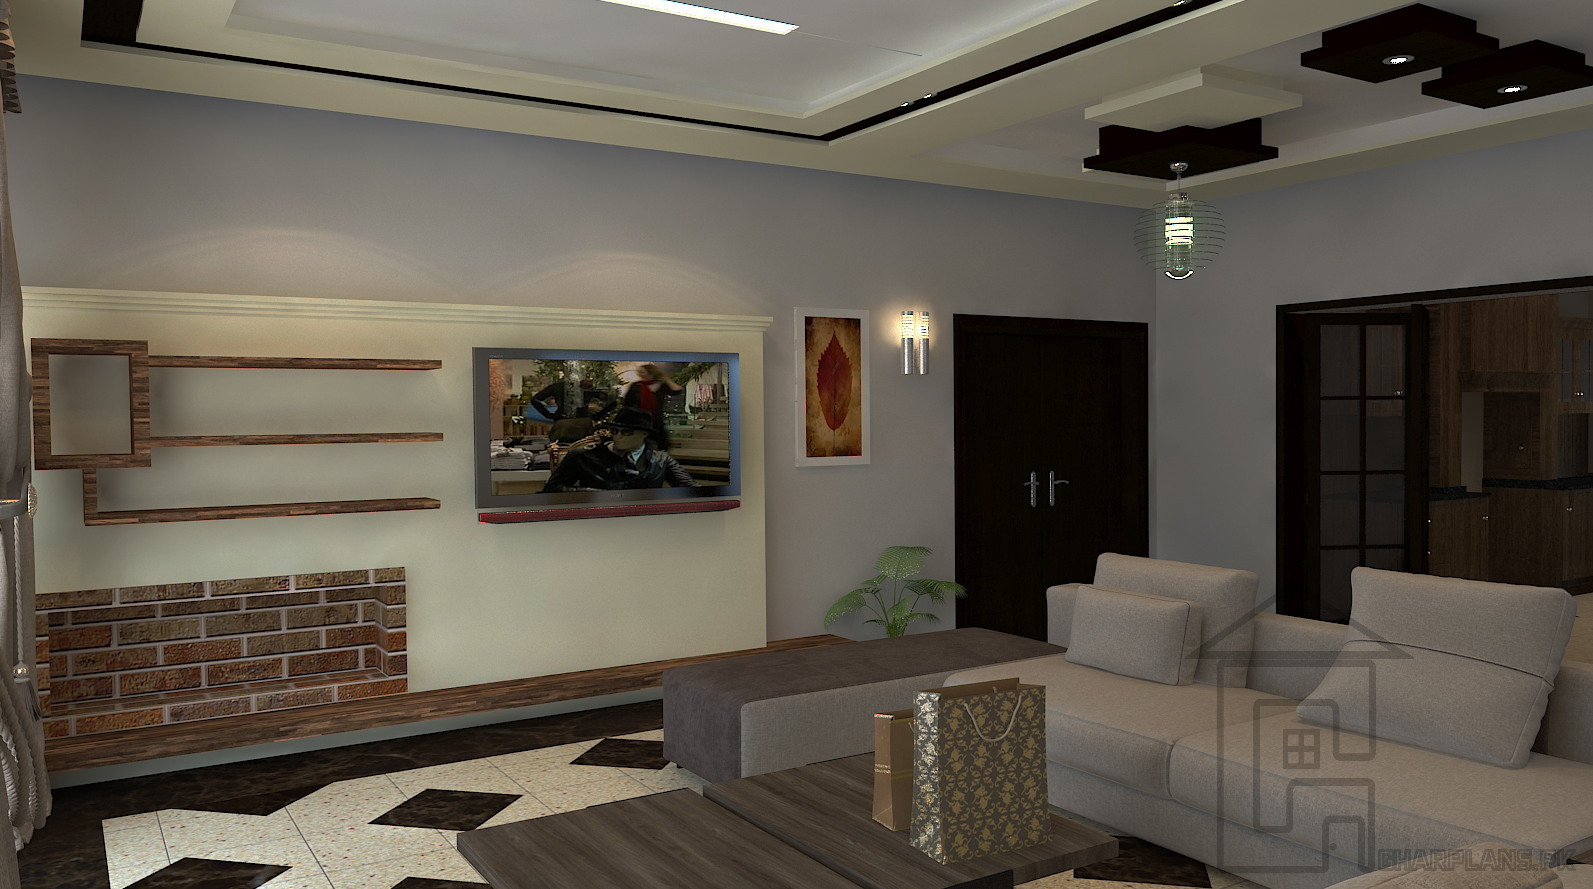 Tv lounge setting of a house in lahore pakistan where the décor is